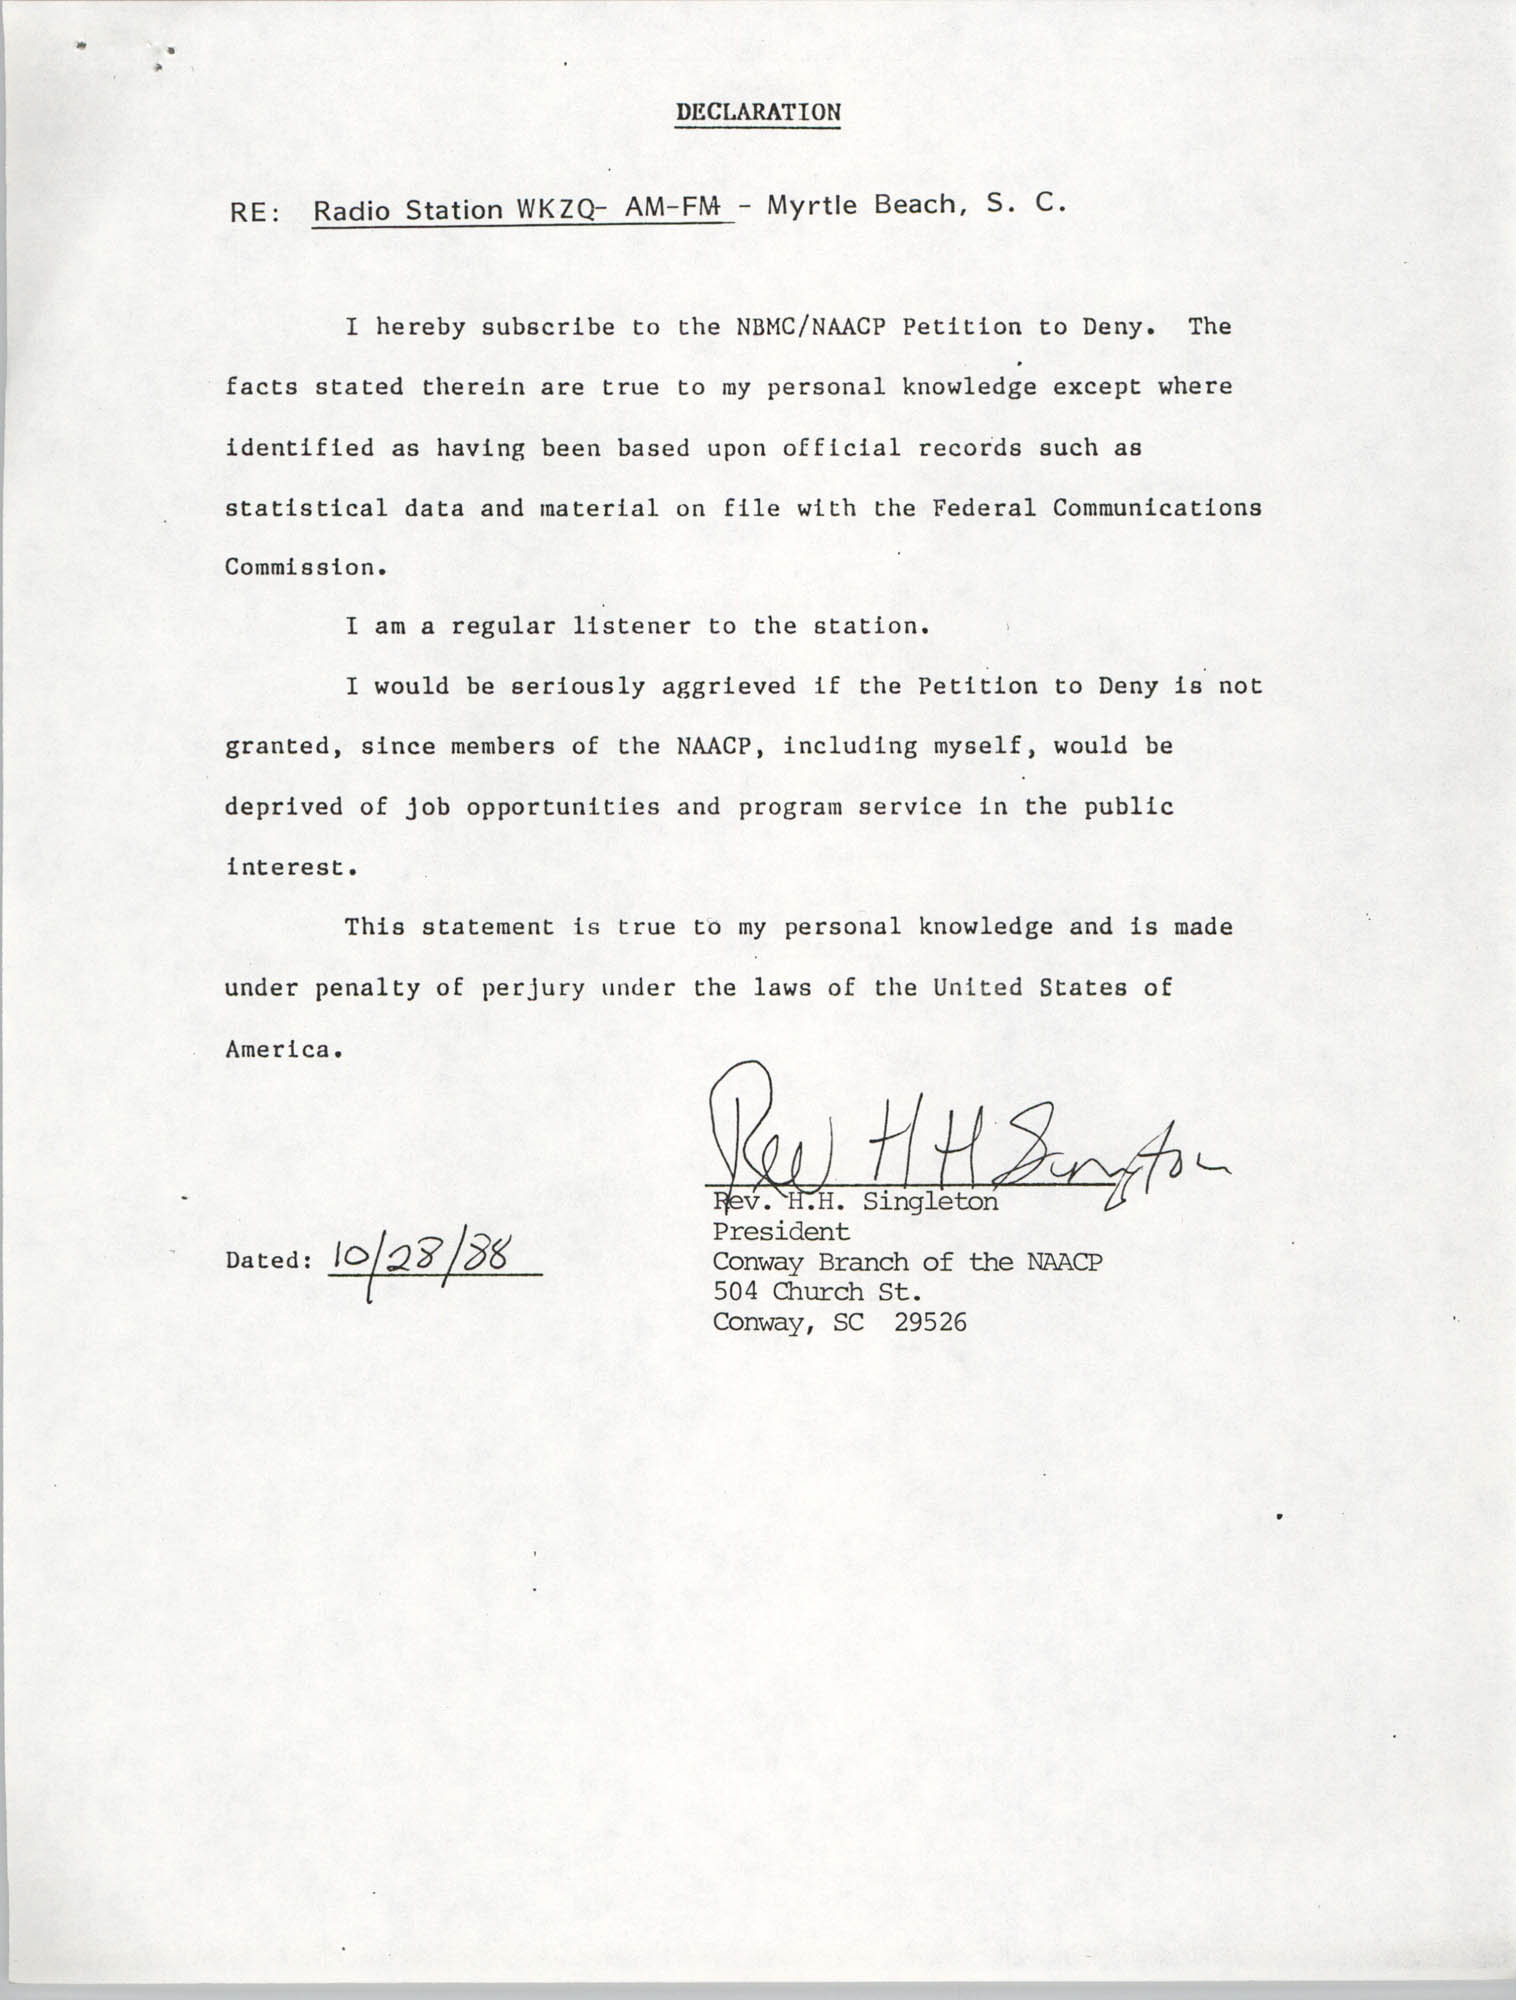 NAACP Petition Submitted Before the Federal Communications Commission, Declaration from Rev. H. H. Singleton